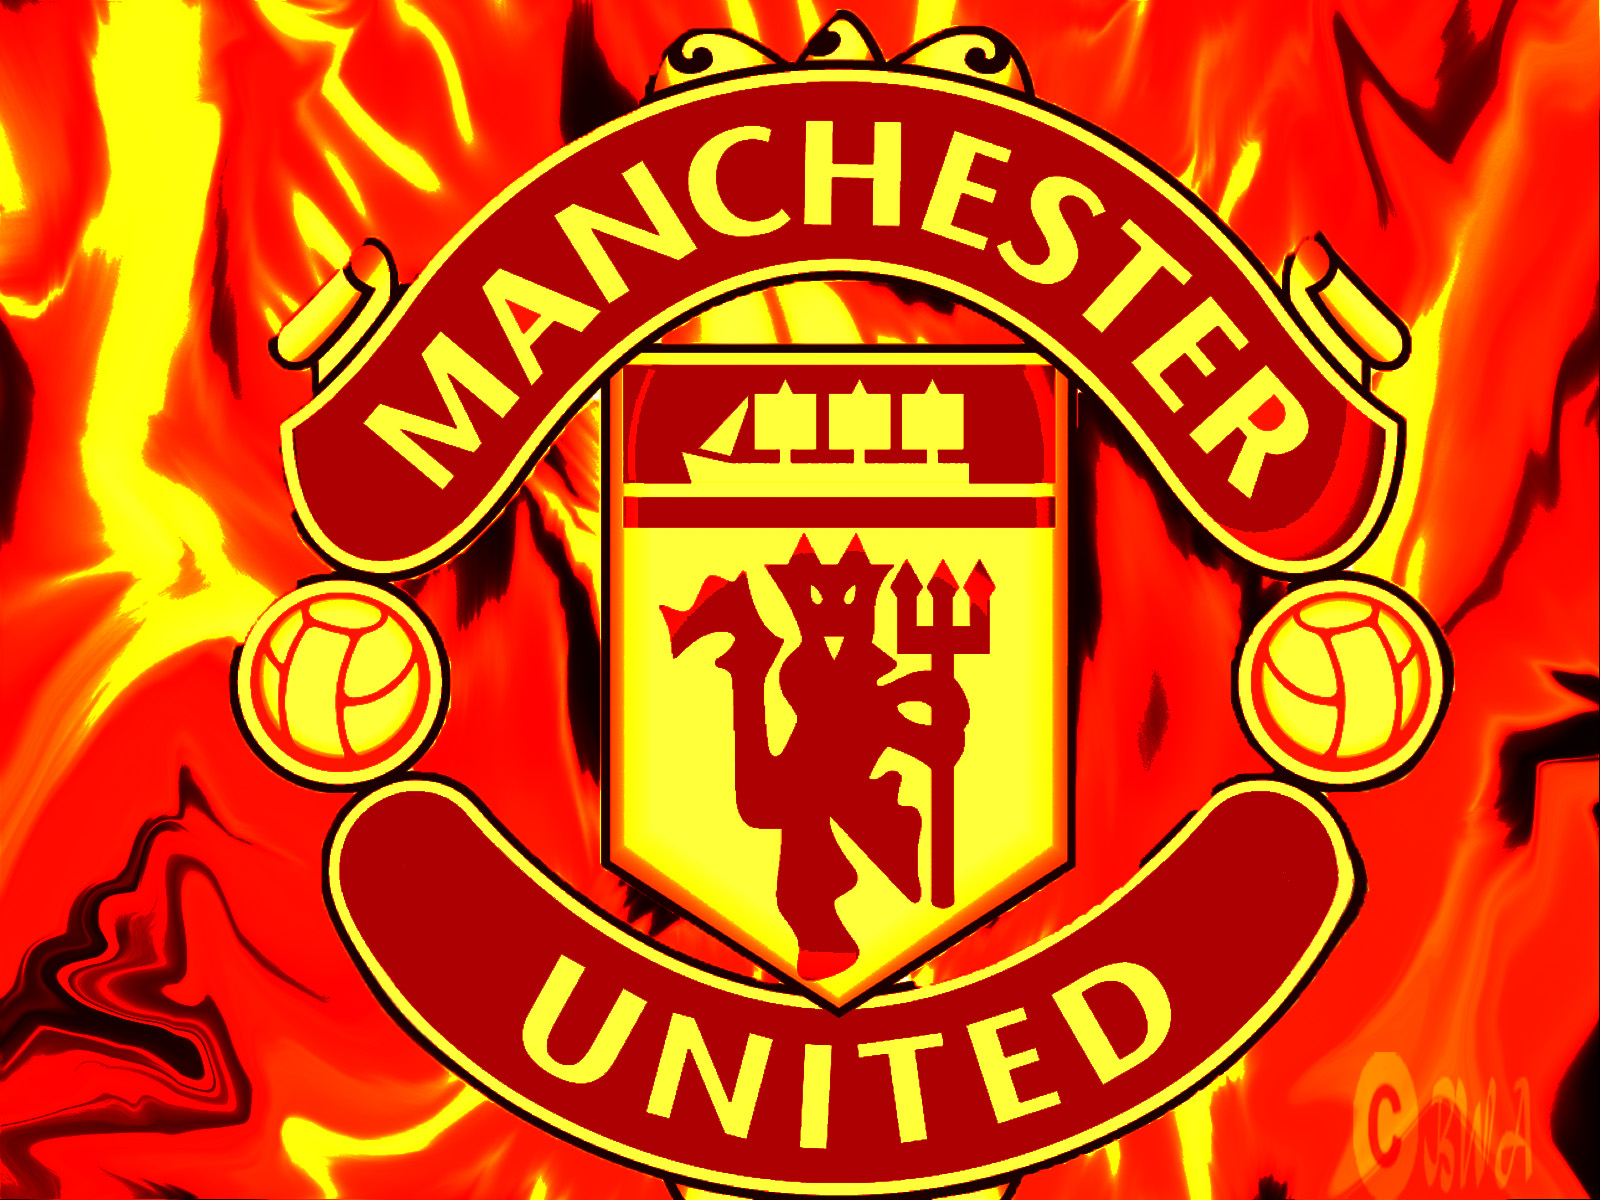 Manchester United 2013 Wallpapers 2013 HD 1600x1200